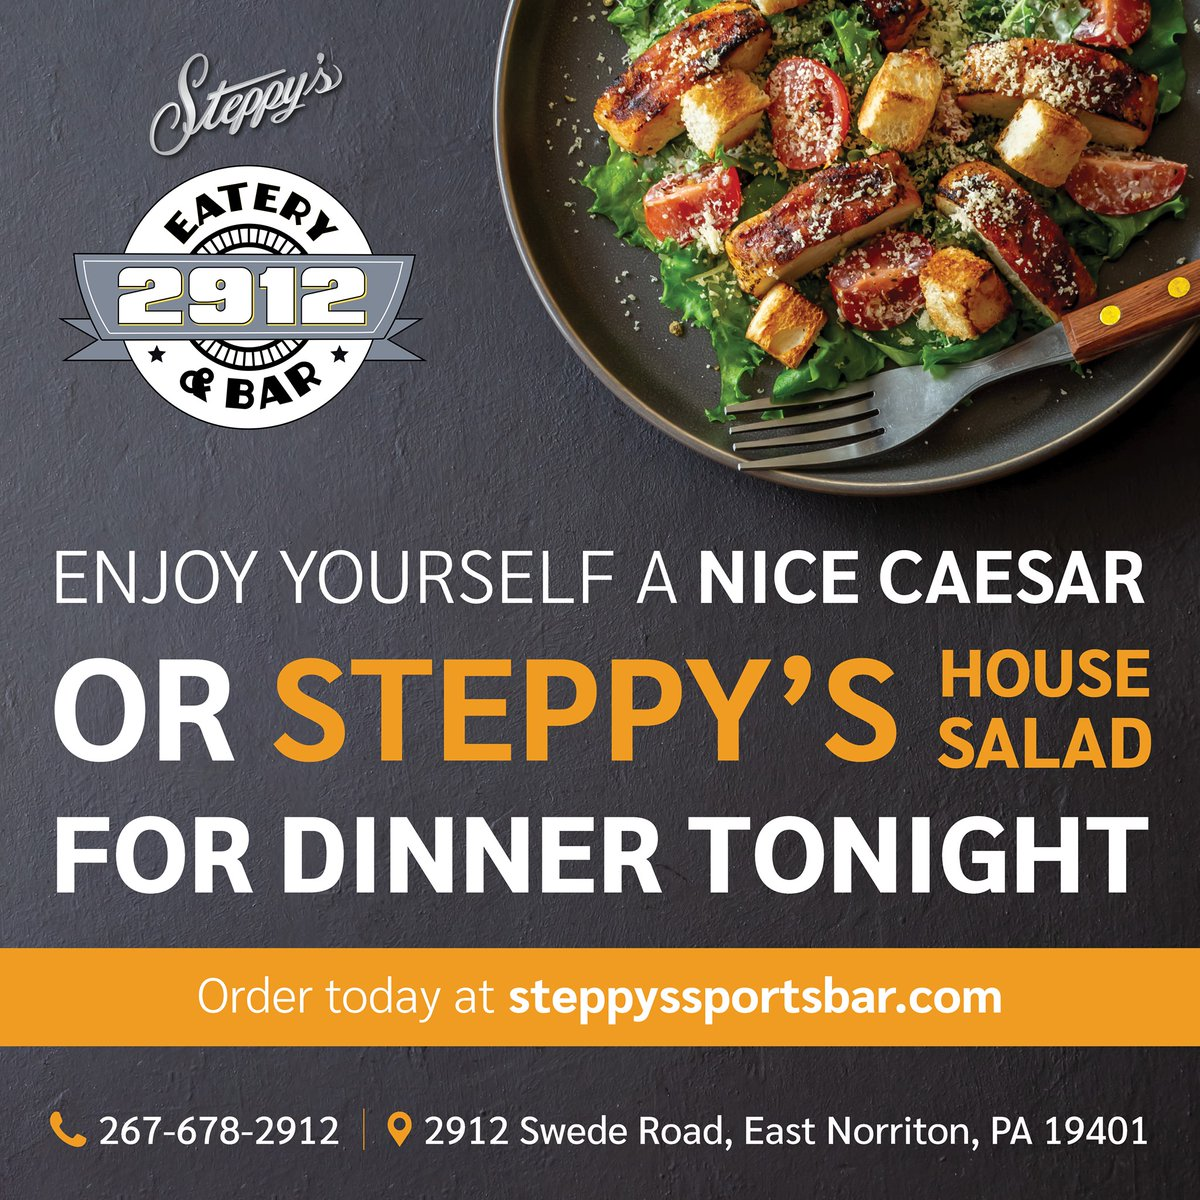 Enjoy yourself a nice Caesar or Steppy's House salad for dinner tonight. Order today at https://t.co/AIY1ZS2cUG. #caesar #house #salads https://t.co/rzxVMq04DJ